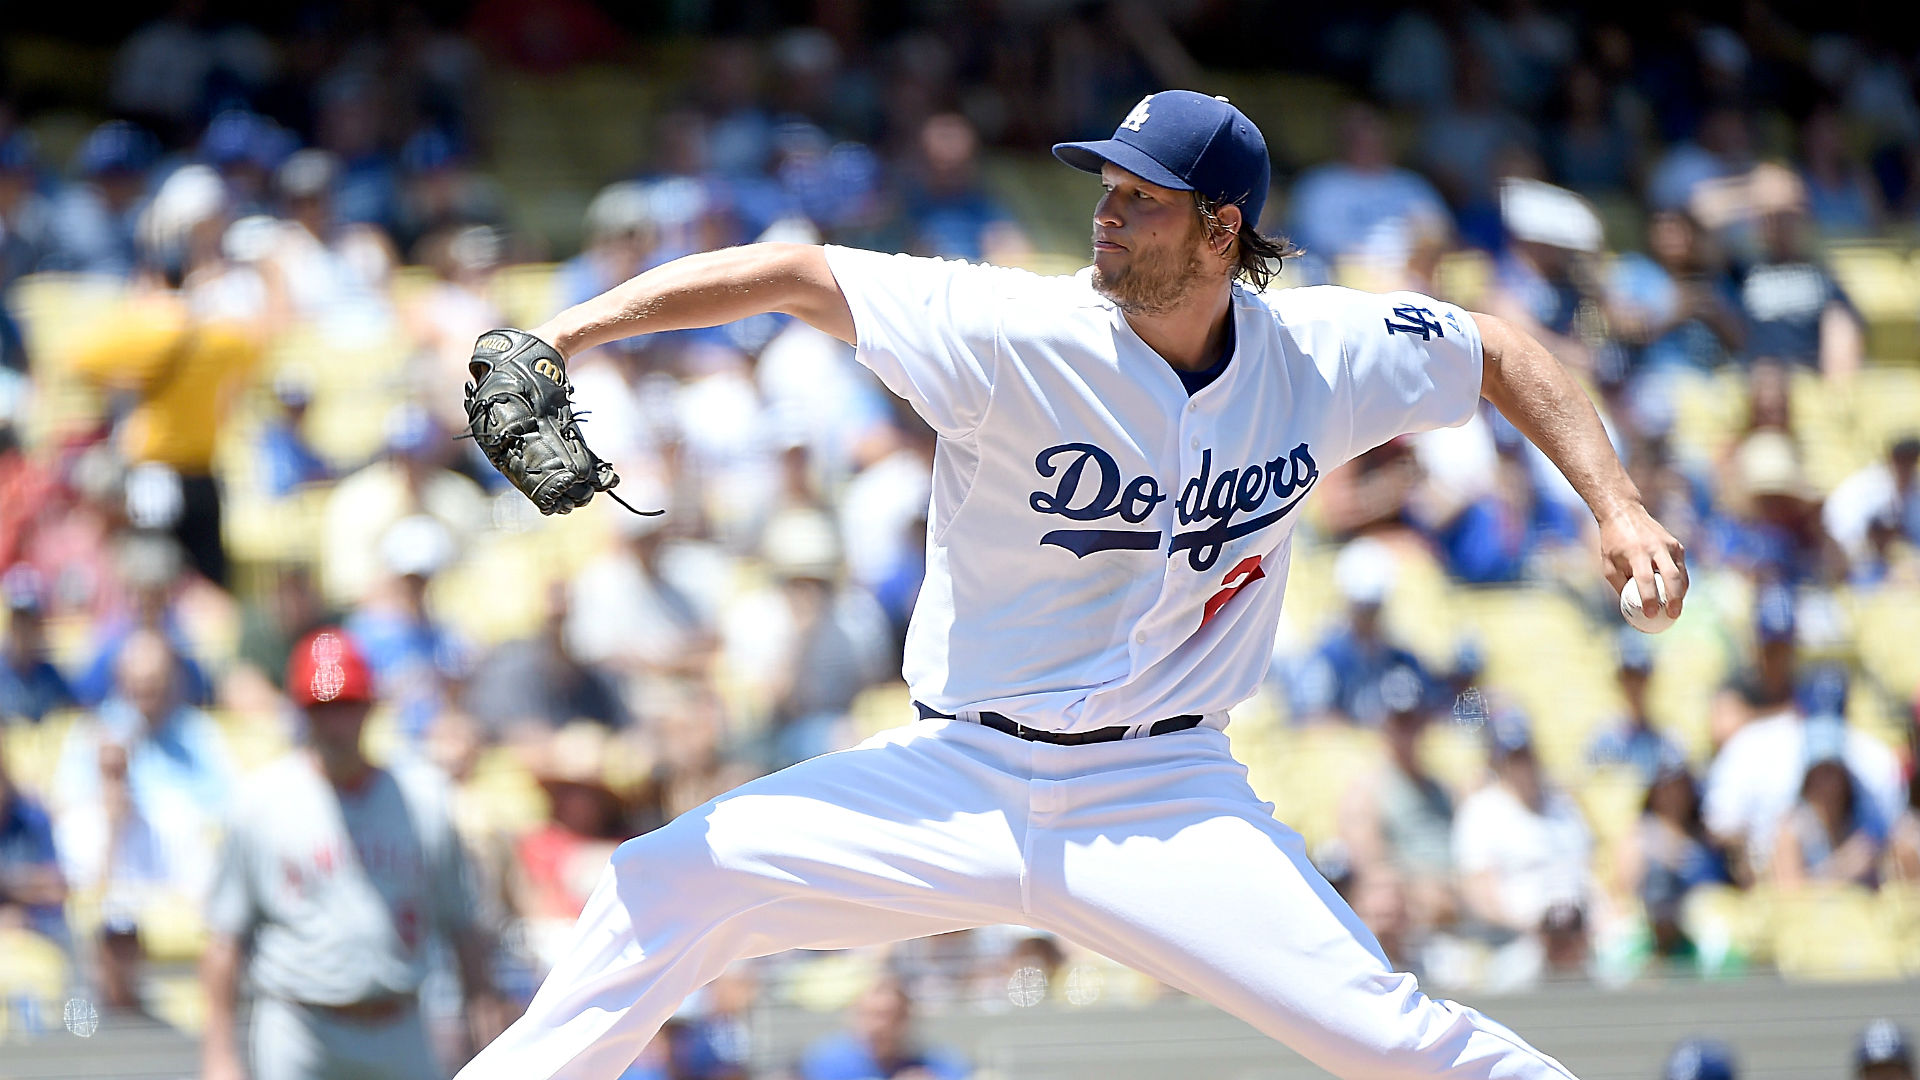 MLB Nightly 9: Kershaw continues scoreless streak, Duda powers Mets